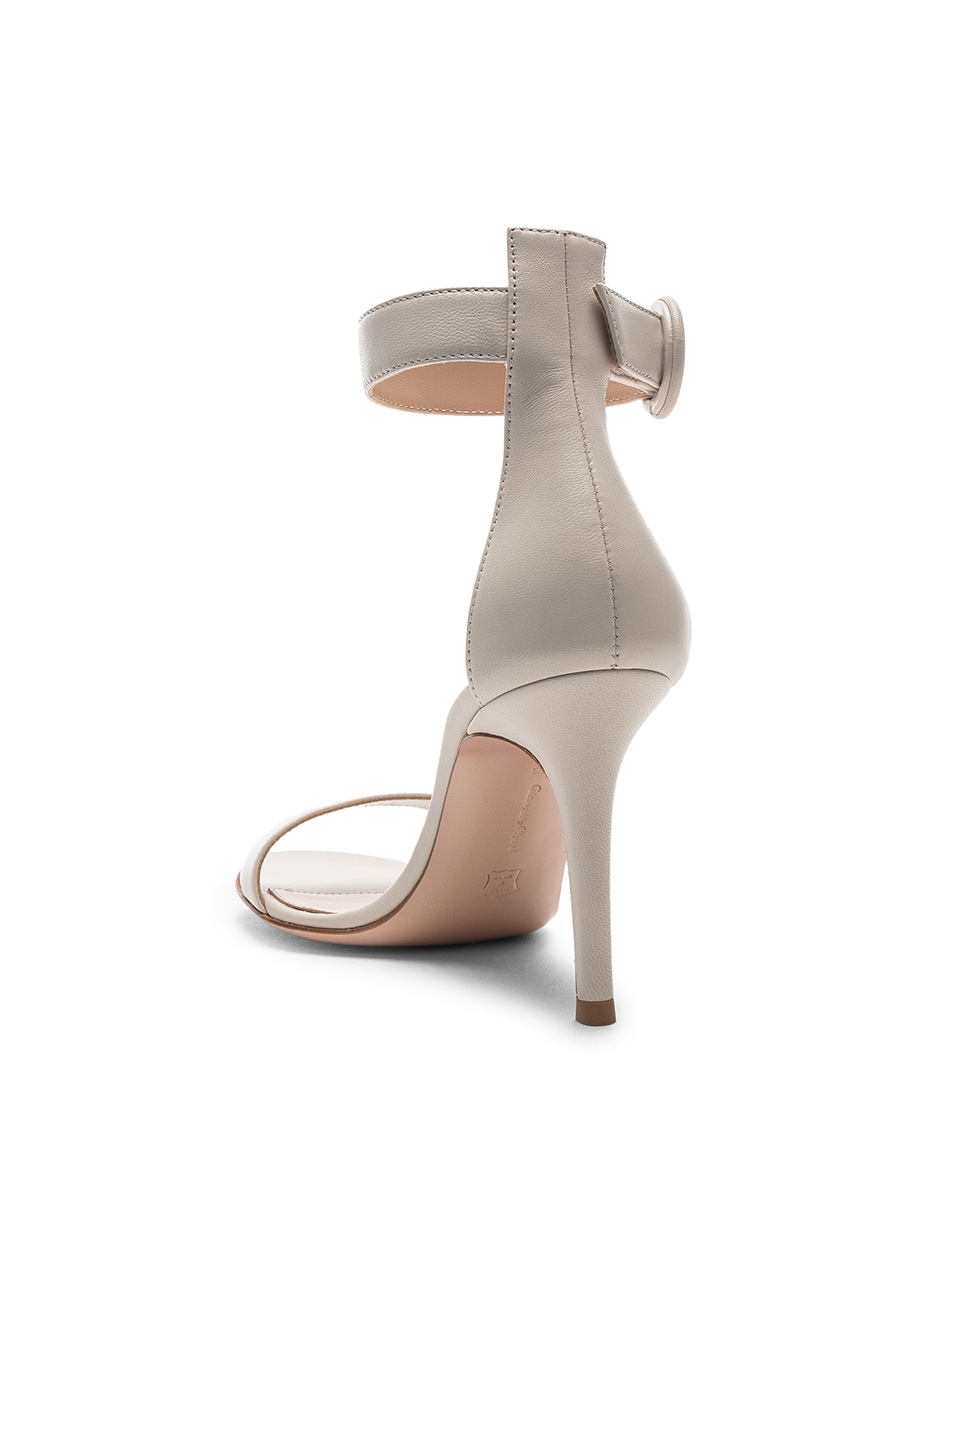 Image 3 of Gianvito Rossi Portofino Heels in Off White